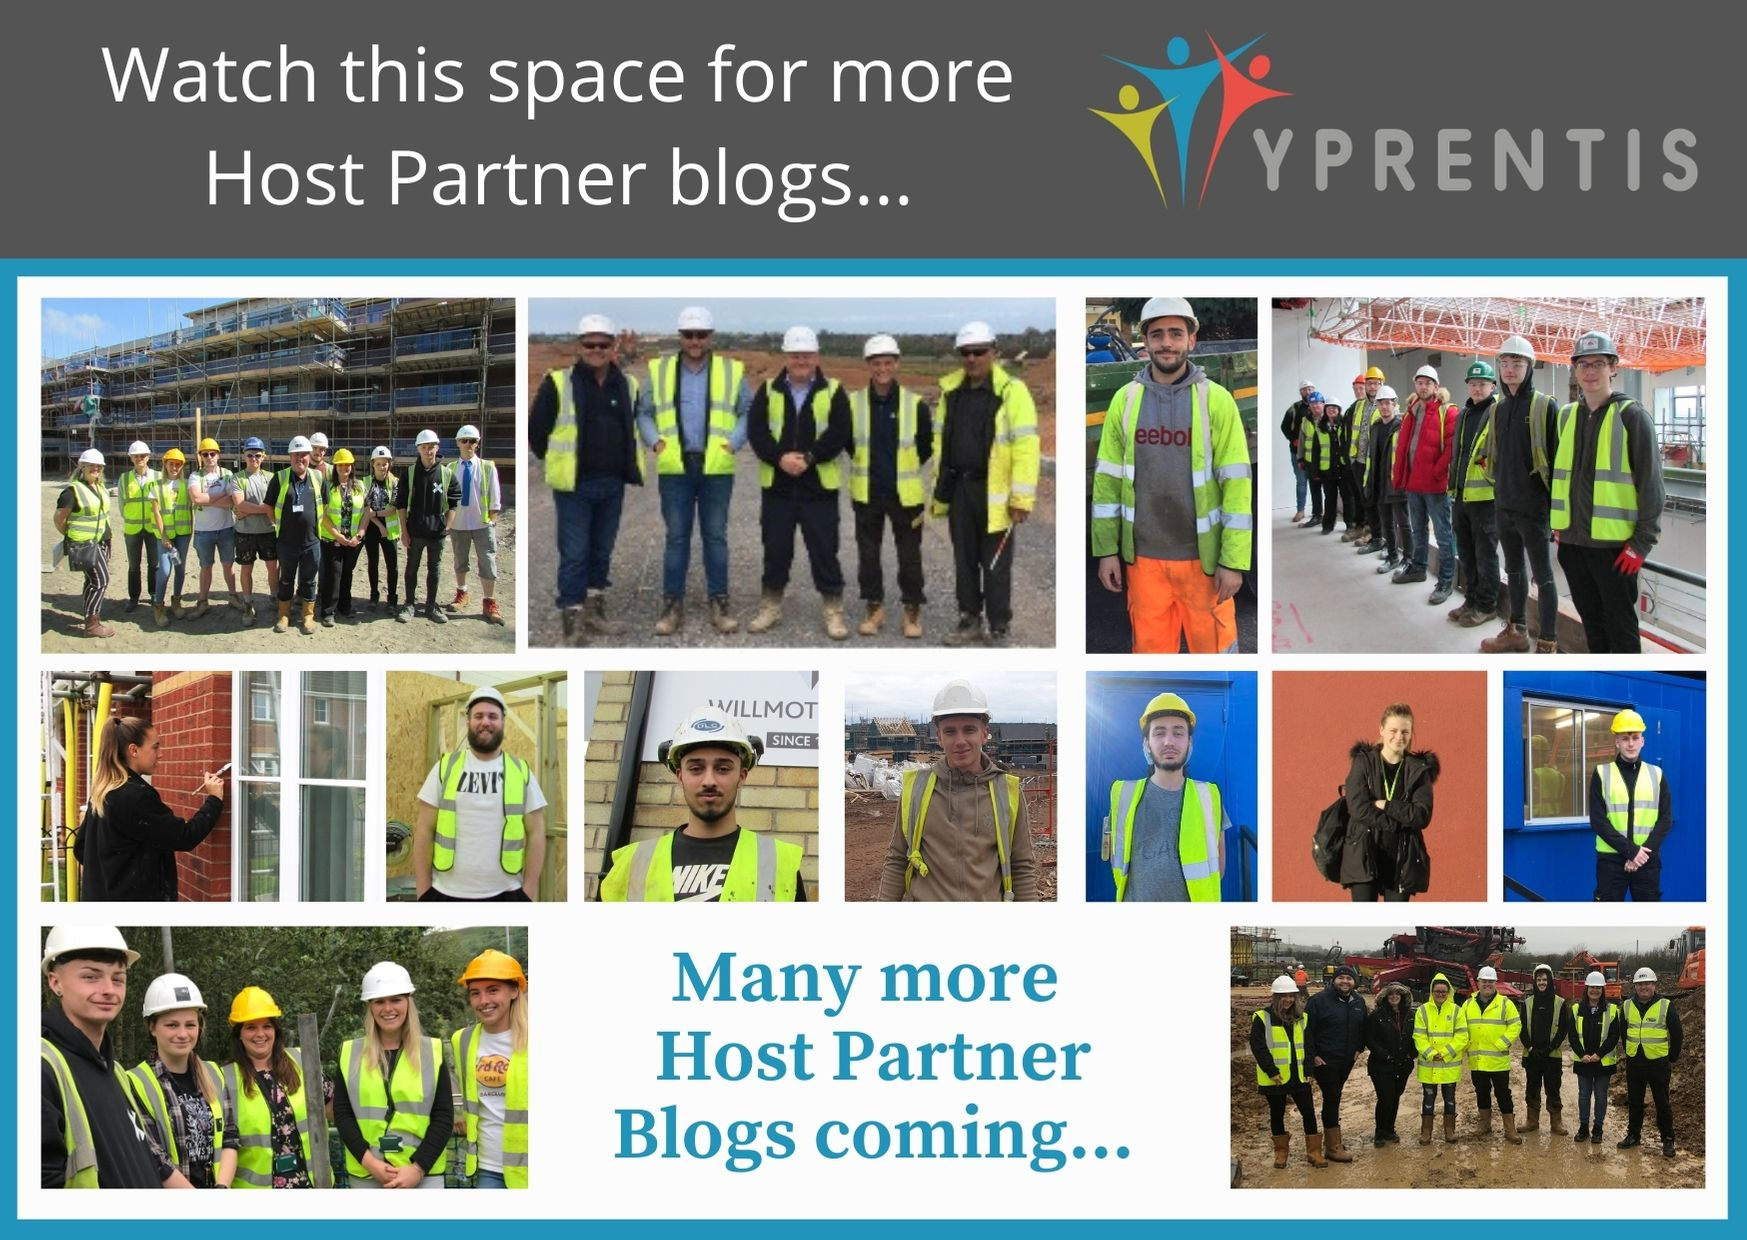 More Host Partners Blogs to follow, watch this space in the future